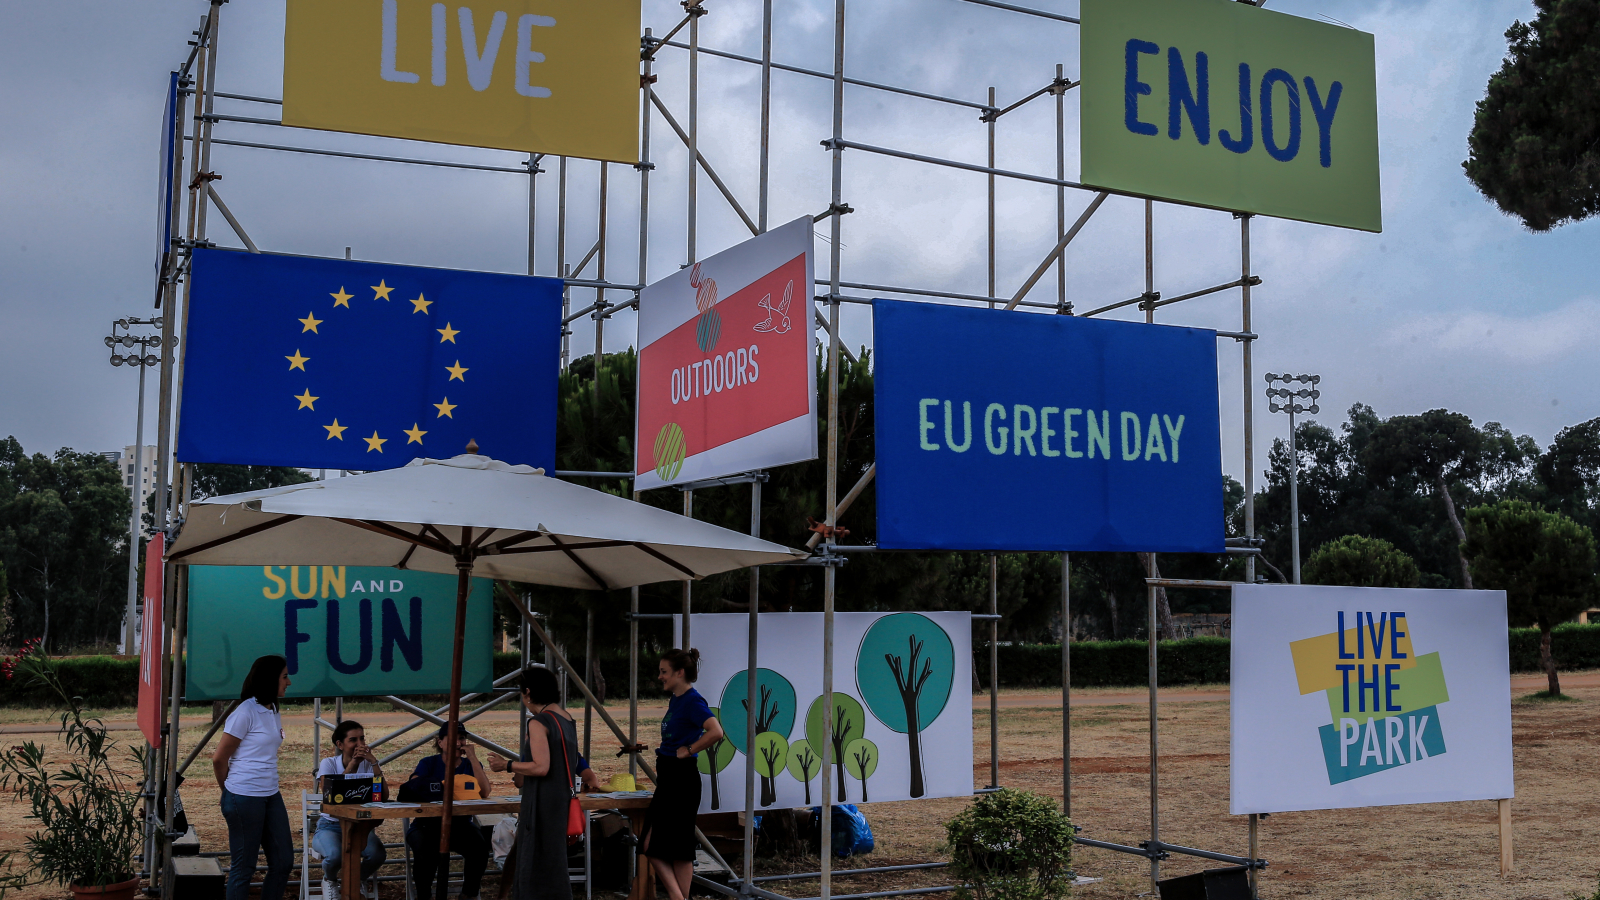 The EU Green Day in Lebanon 2019 #EU4Environment #EUinLebanon